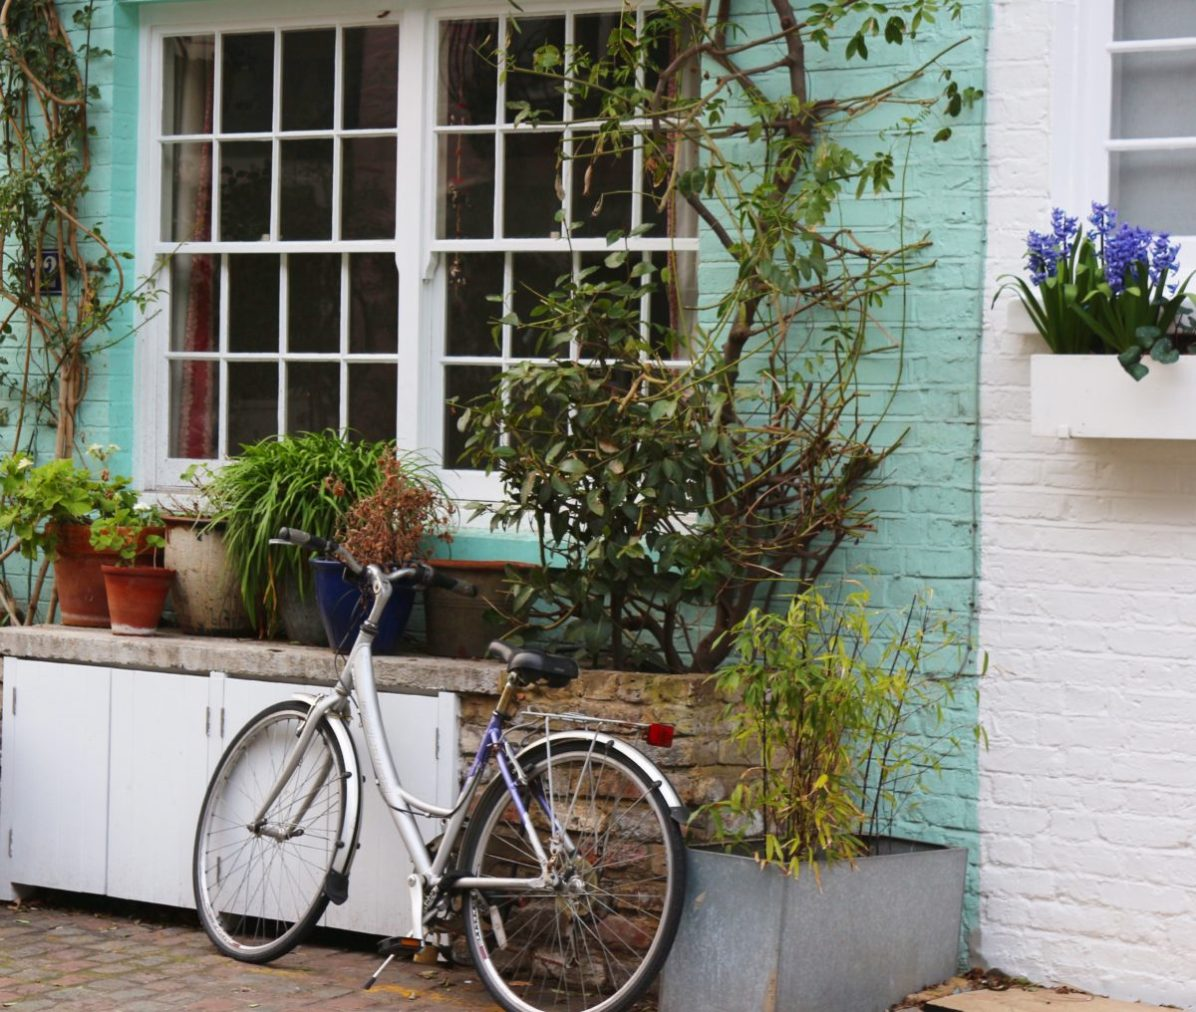 Mews - London Pretty Places - The Weekend Guide